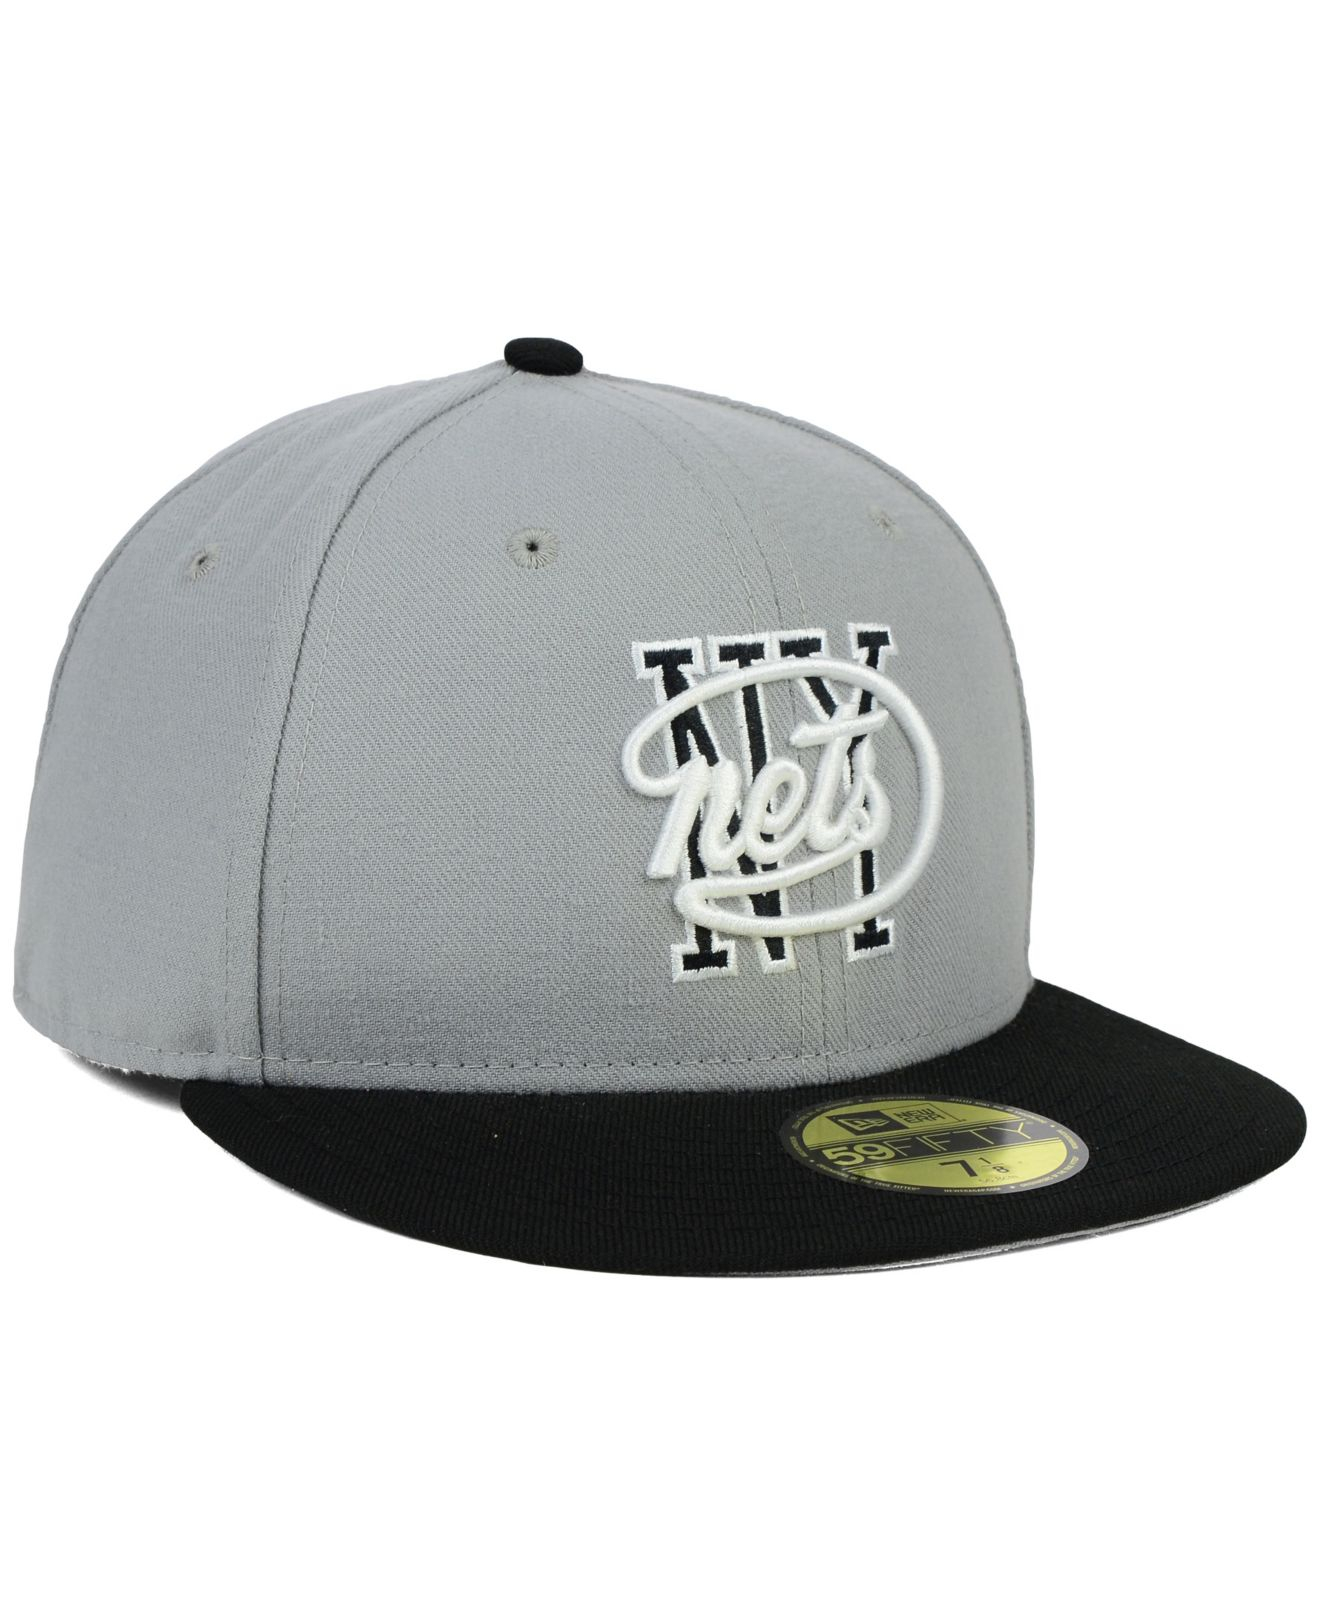 online retailer 63d1c e4faf Lyst - KTZ New York Nets Nba Hwc Team Color 59fifty Cap in Gray for Men